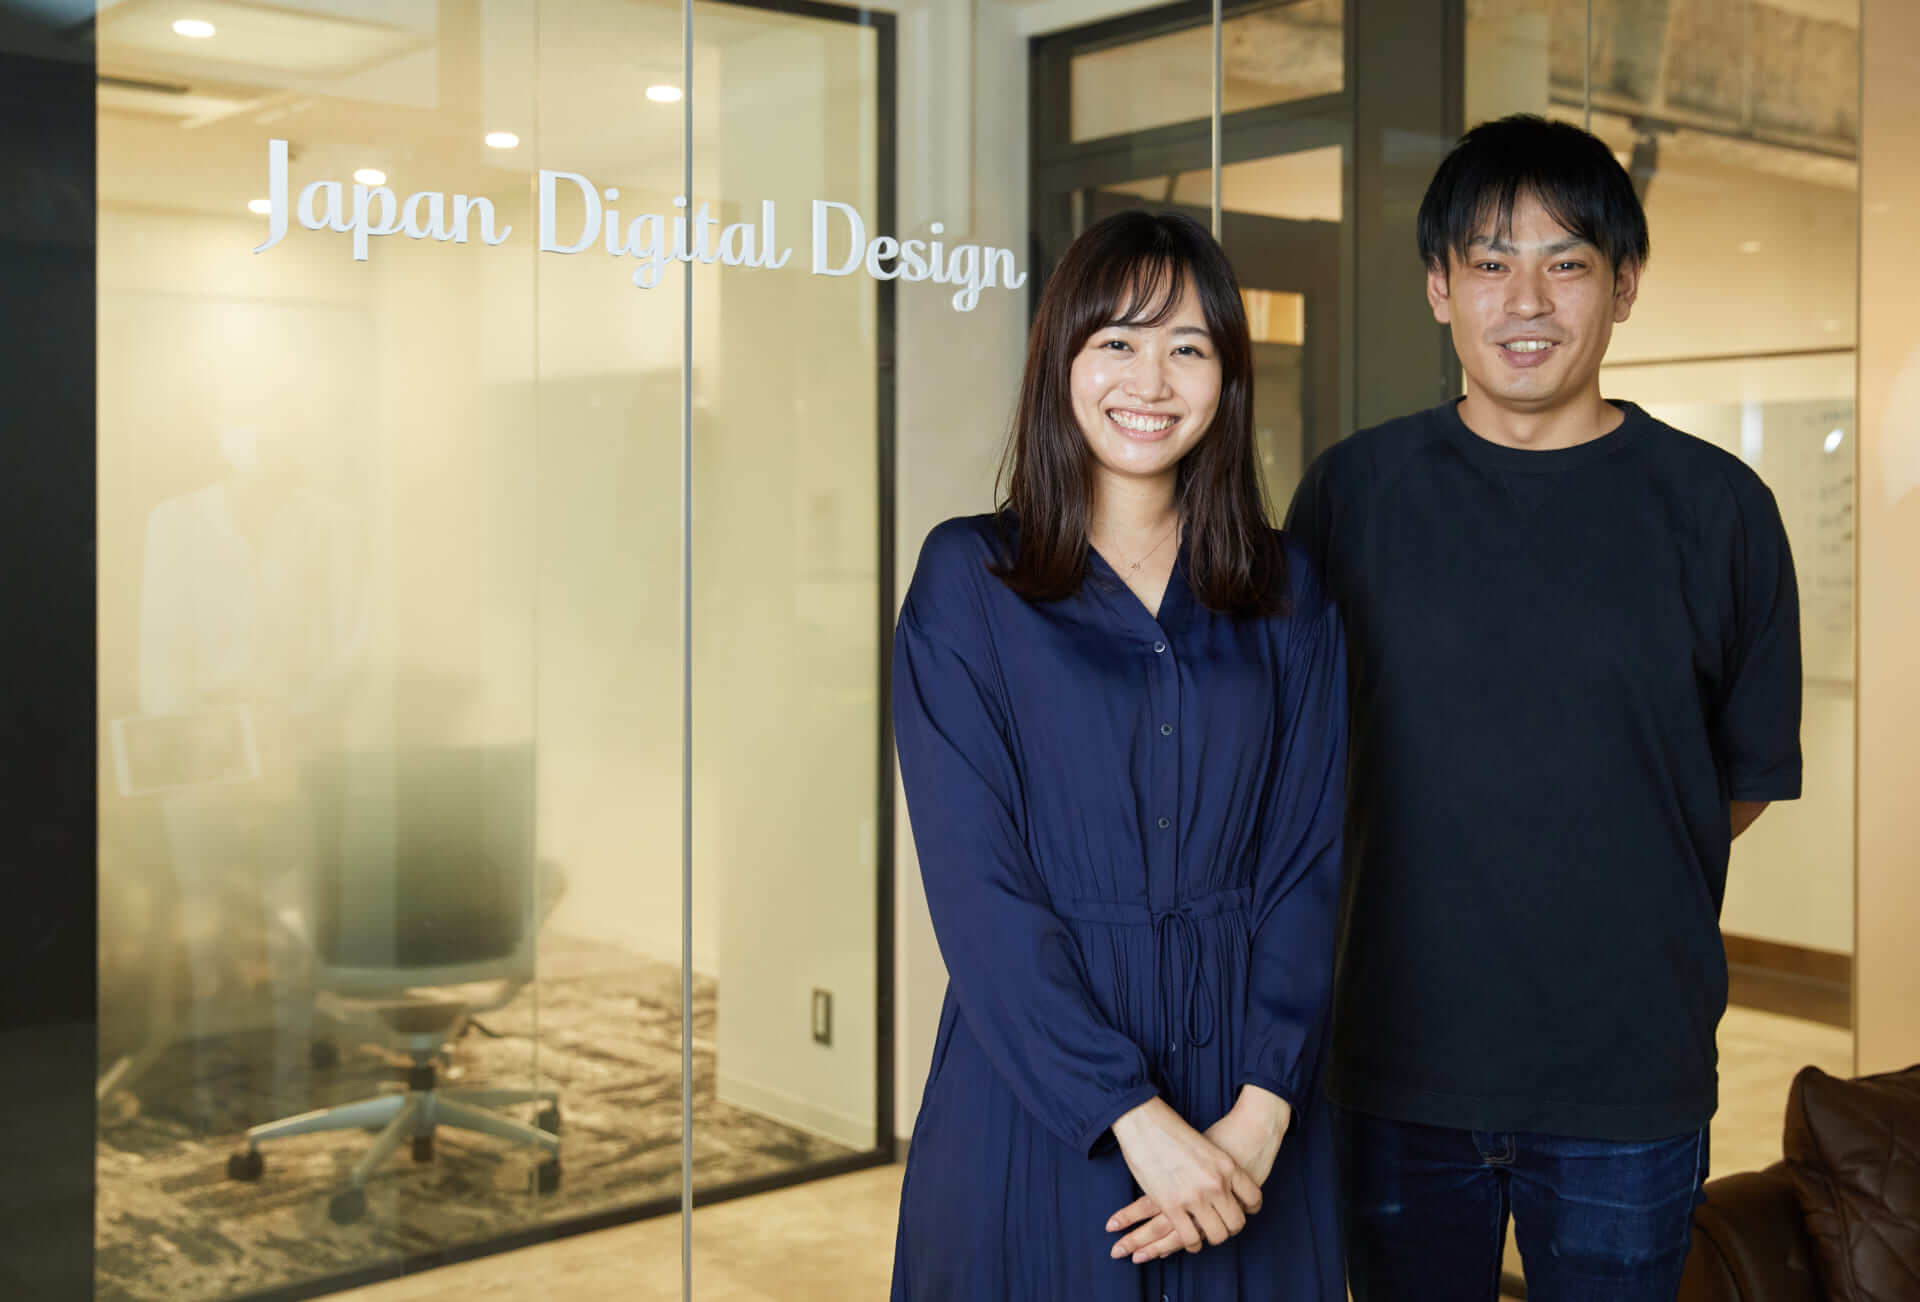 Japan Digital Design 株式会社